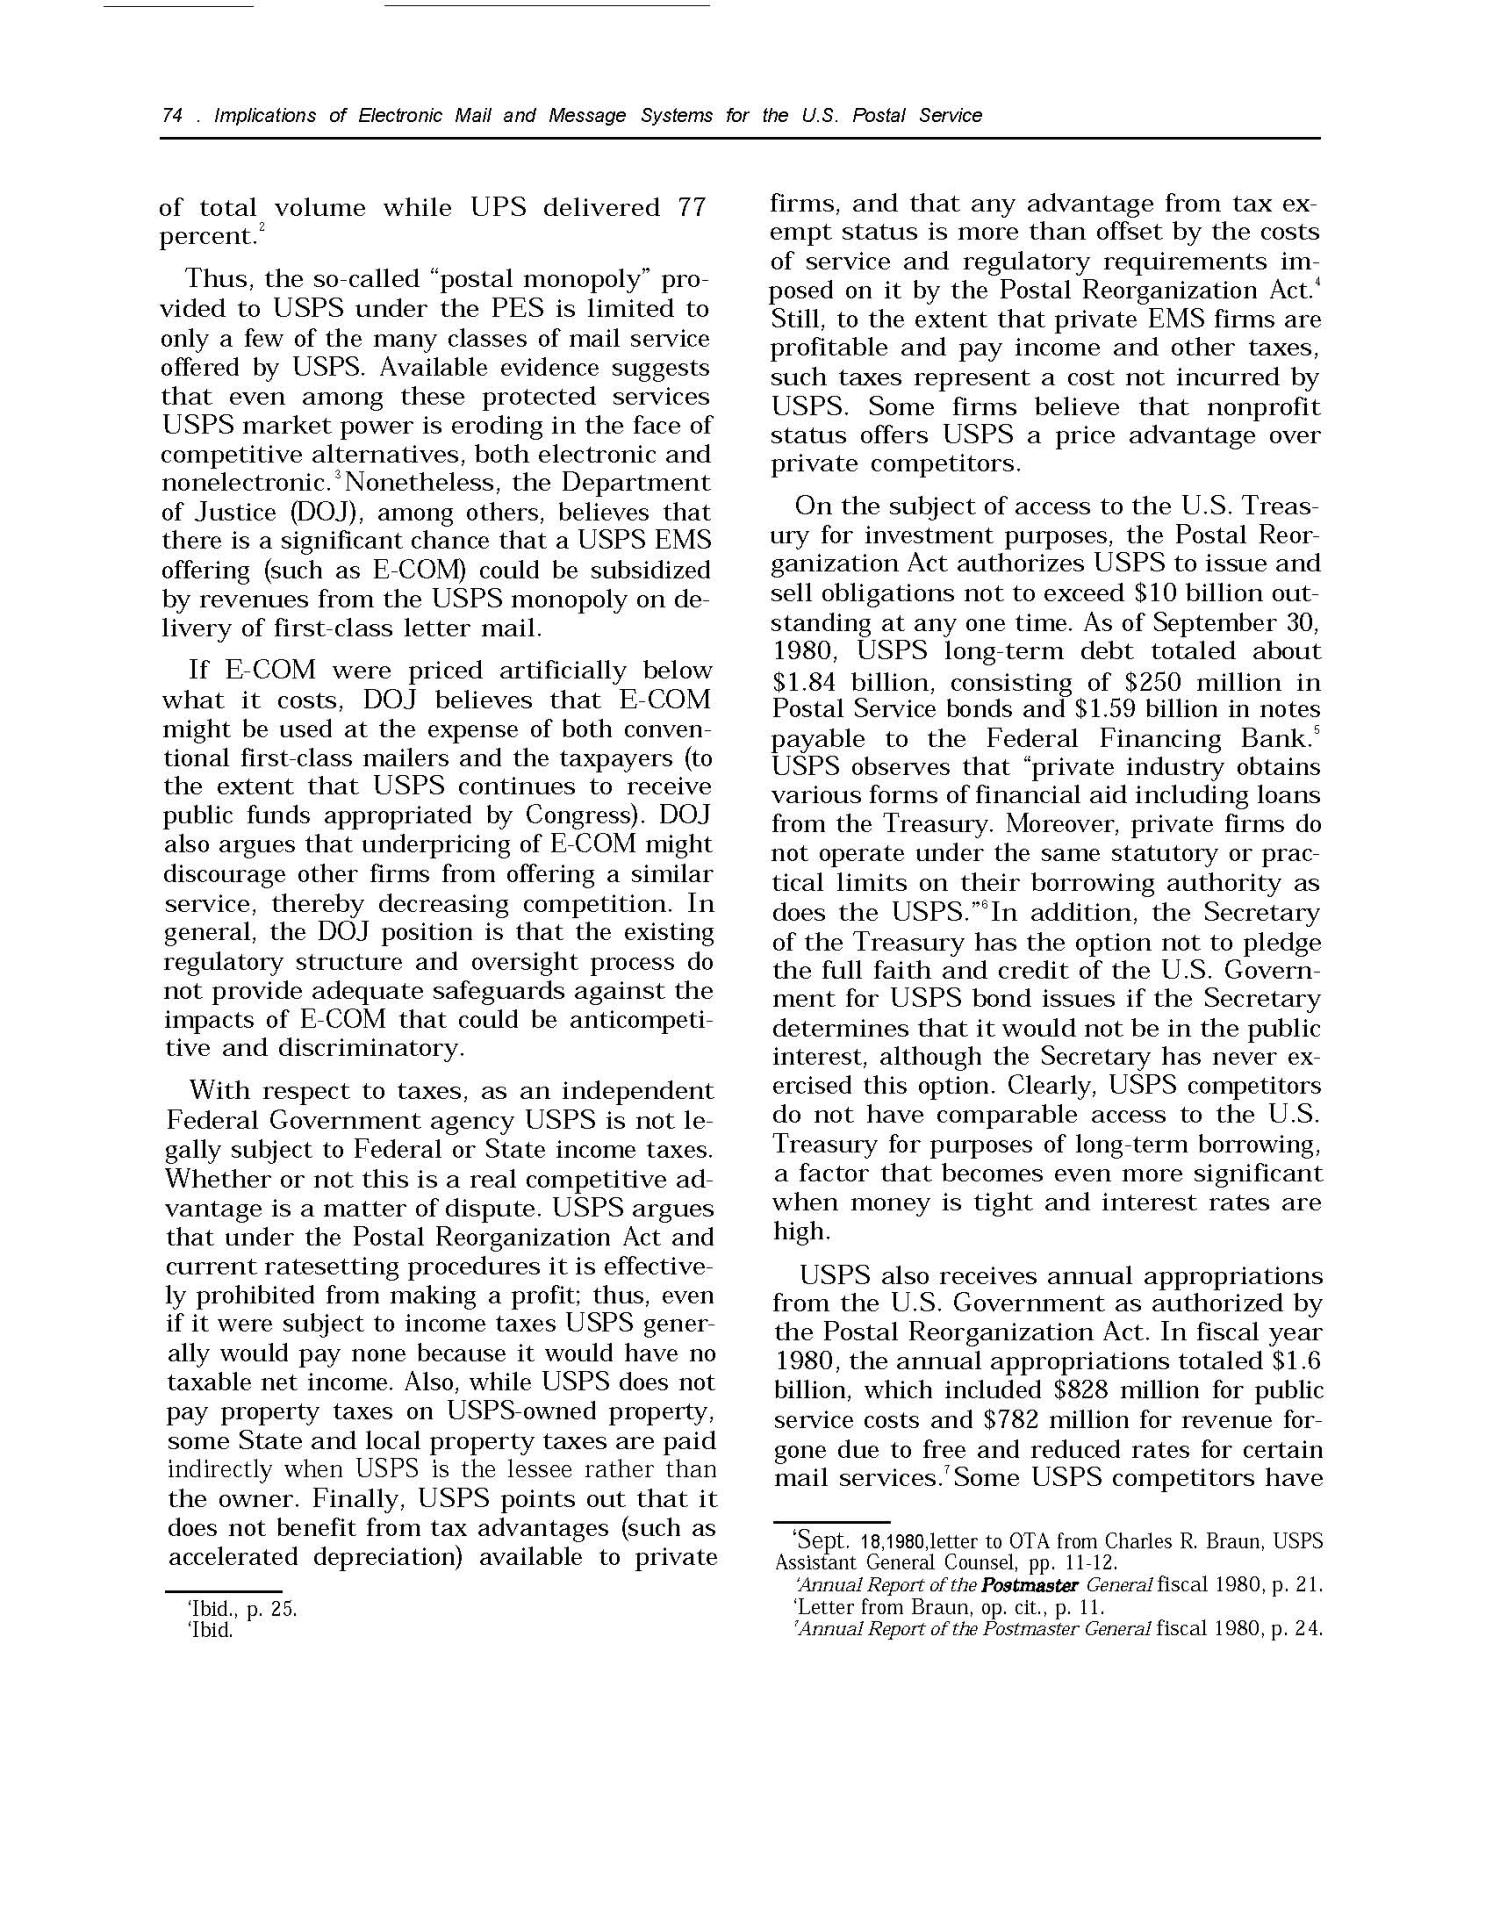 Implications of Electronic Mail and Message Systems for the U.S. Postal Service                                                                                                      74